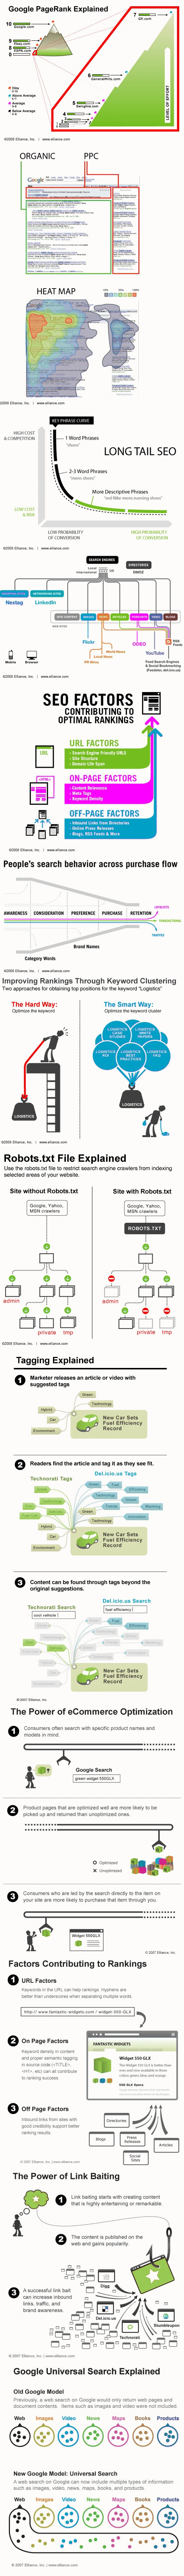 Google Pagerank Explained [Infographic]